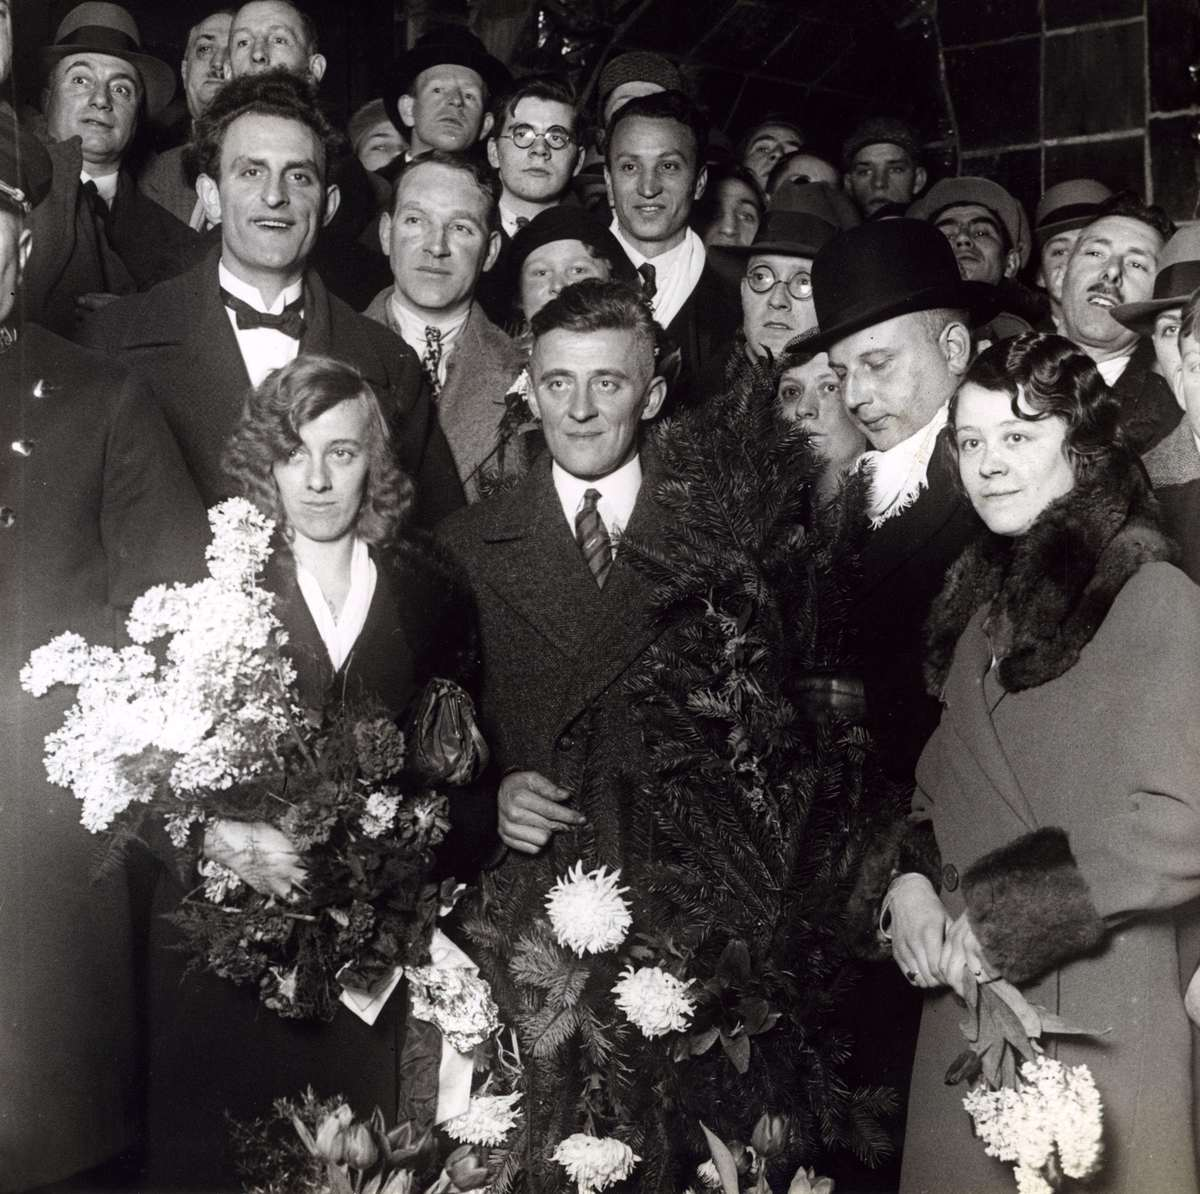 Huldiging van Blekemolen als Nederlands kampioen stayers in 1932